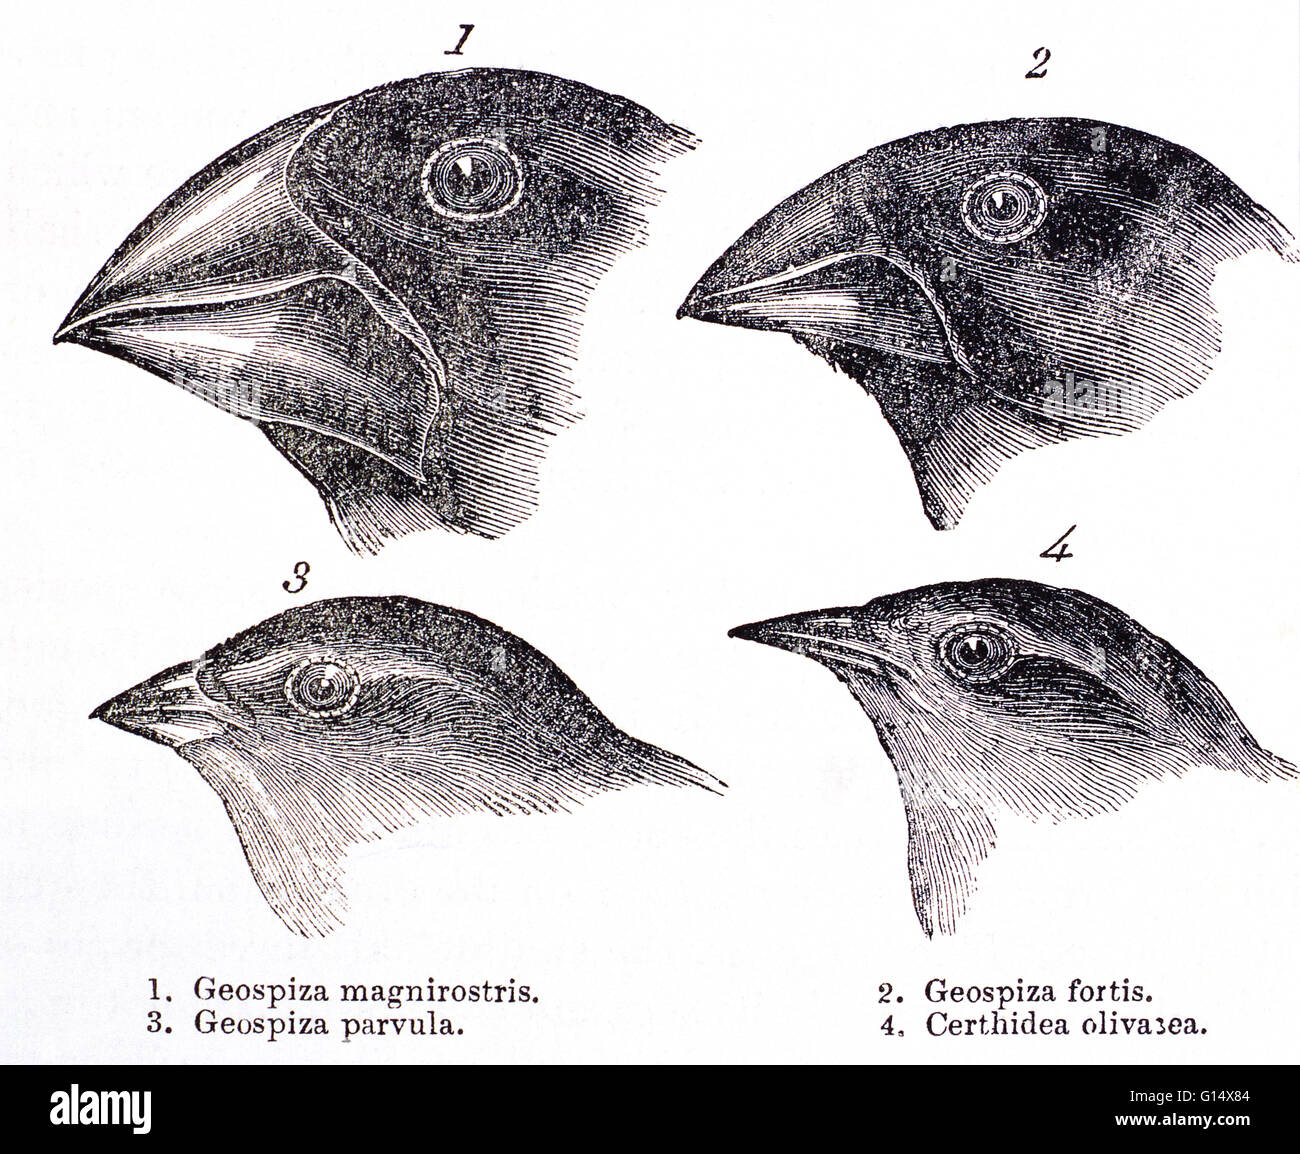 Galapagos finches. Historical artwork of the heads of ...